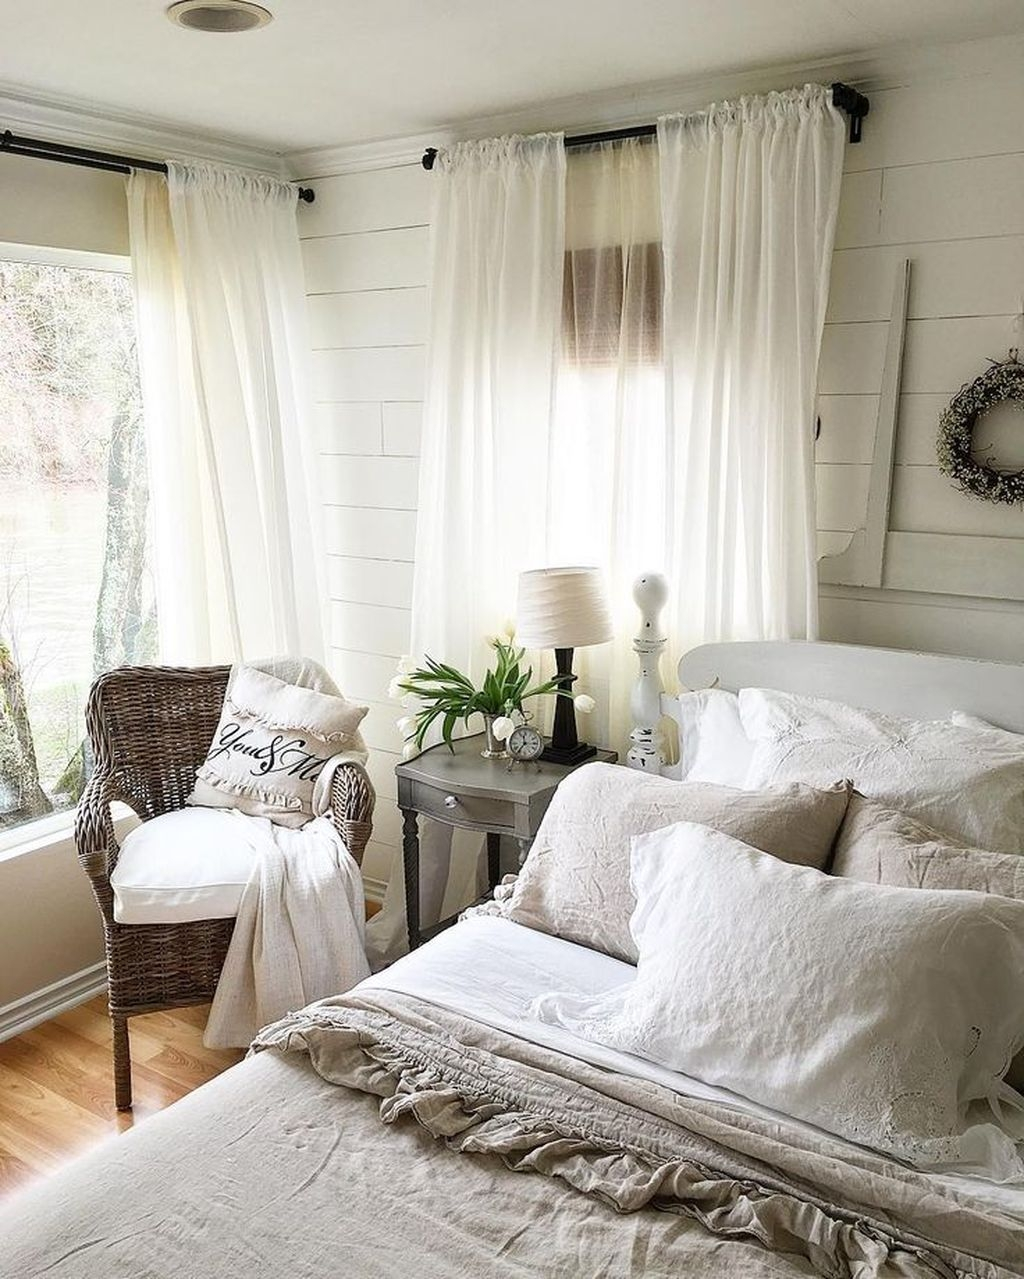 Amazing Farmhouse Style For Cozy Bedroom Decorating Ideas19